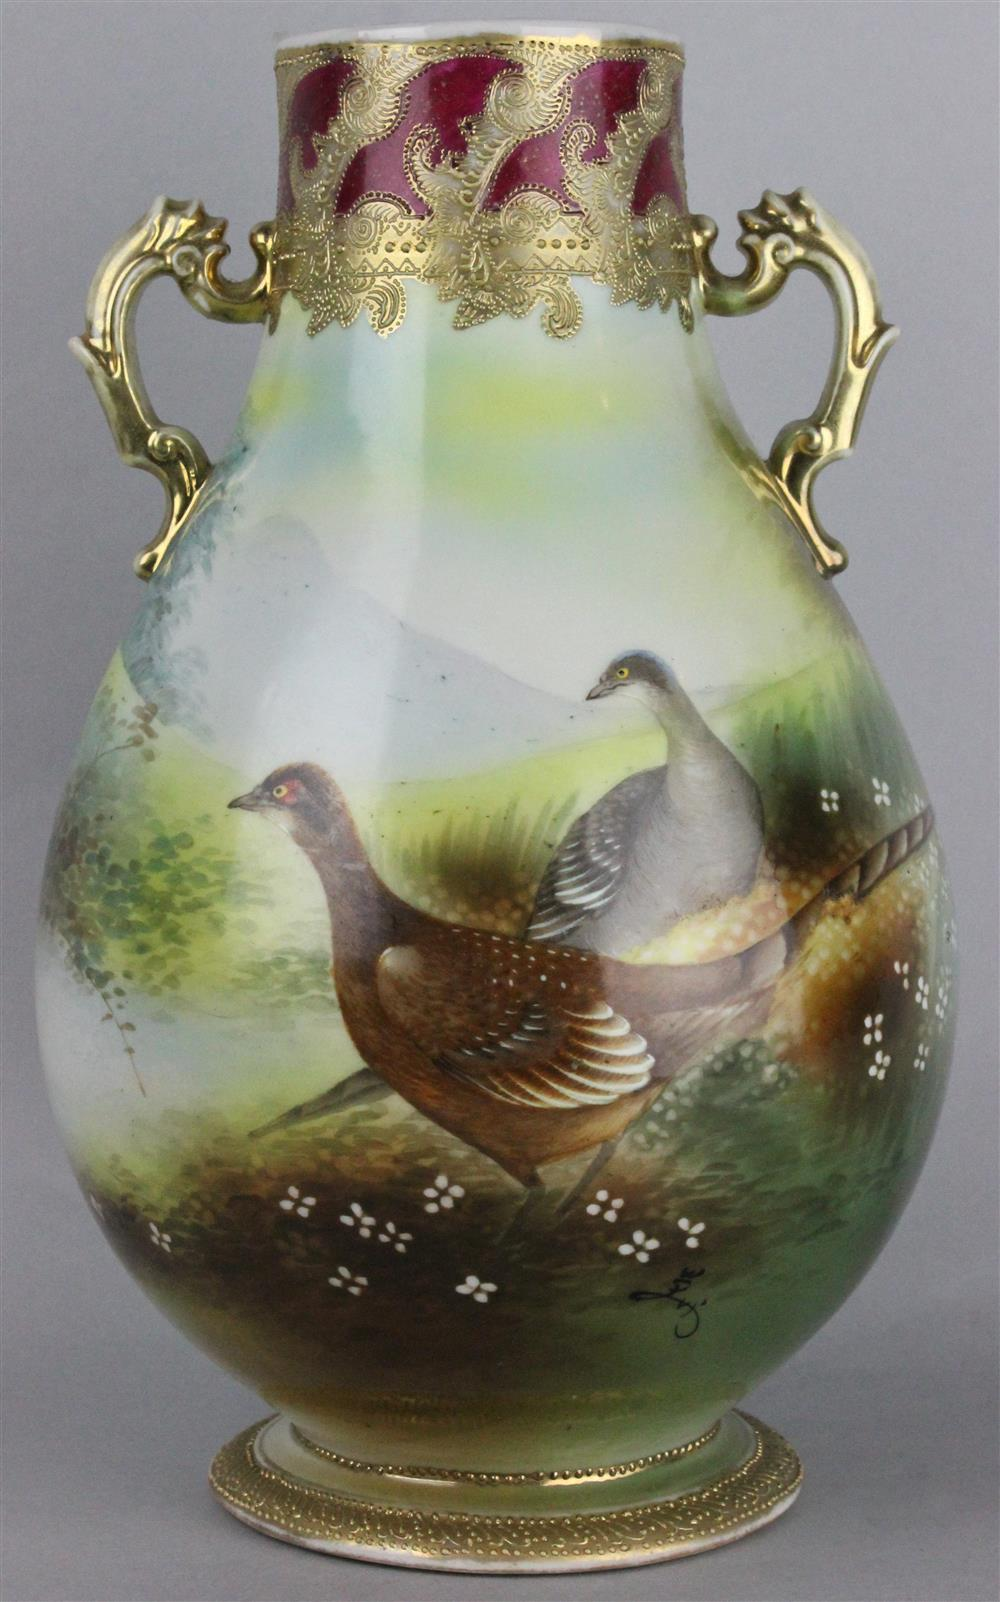 Price guide for nippon hand painted vase with birds marked nippon hand painted vase with birds marked on base and painted with a pair of birds amidst white flowers in a mountain landscape h13 w8 in reviewsmspy